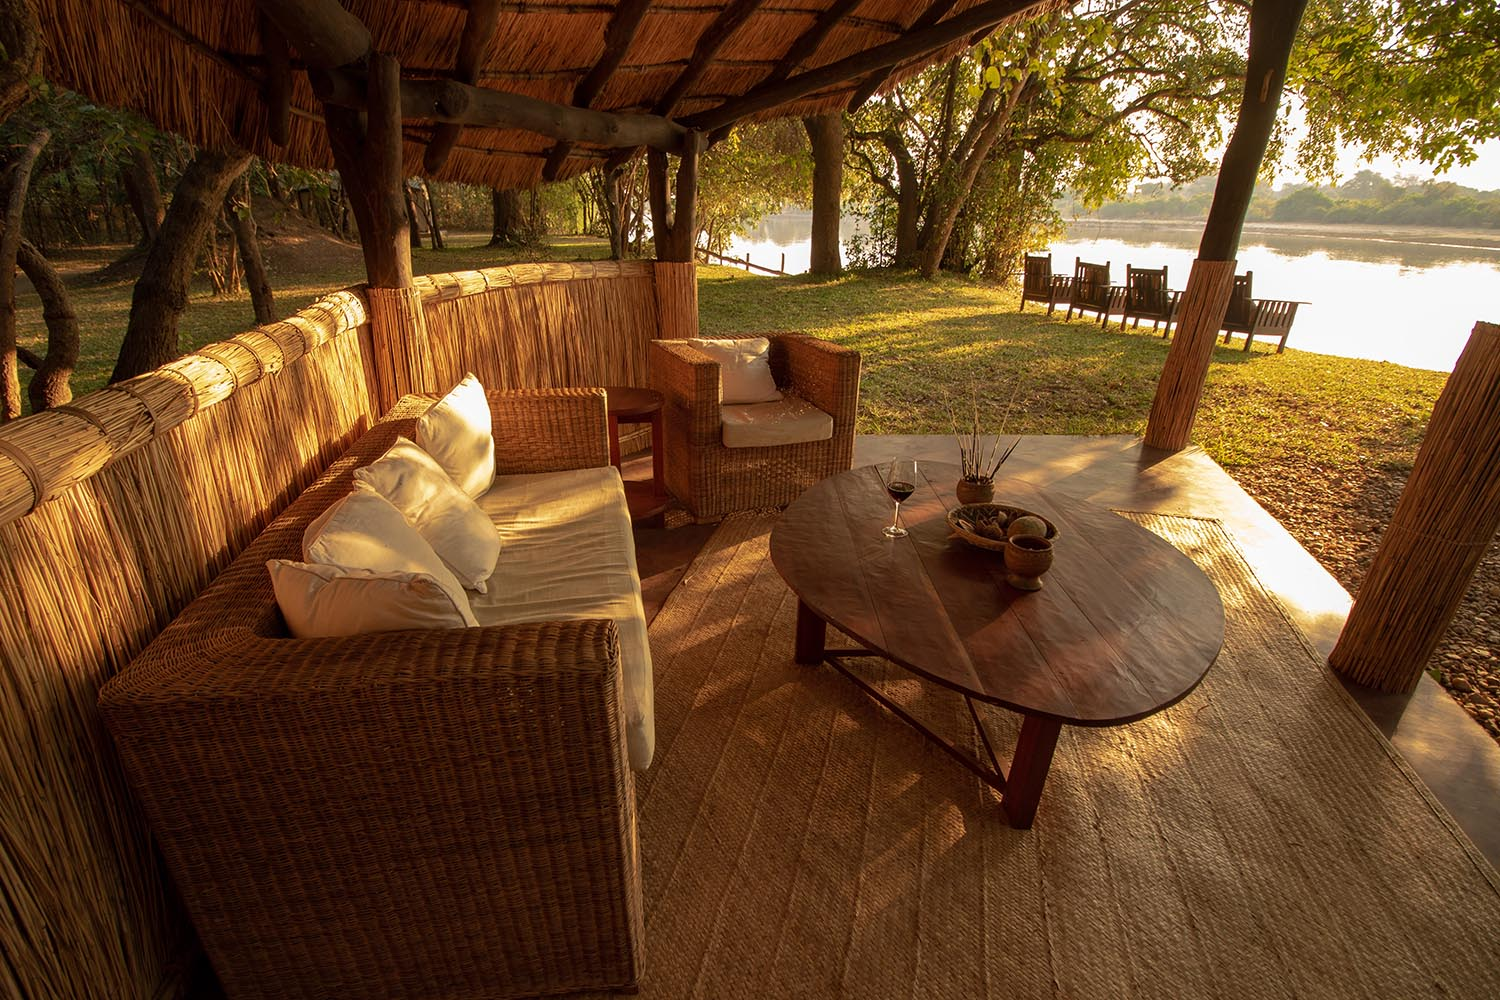 luambe-camp-lodge-zambia-in-style-tours-safari-packages-lodges-luambe-national-park-south-north-luangwa-communal-area